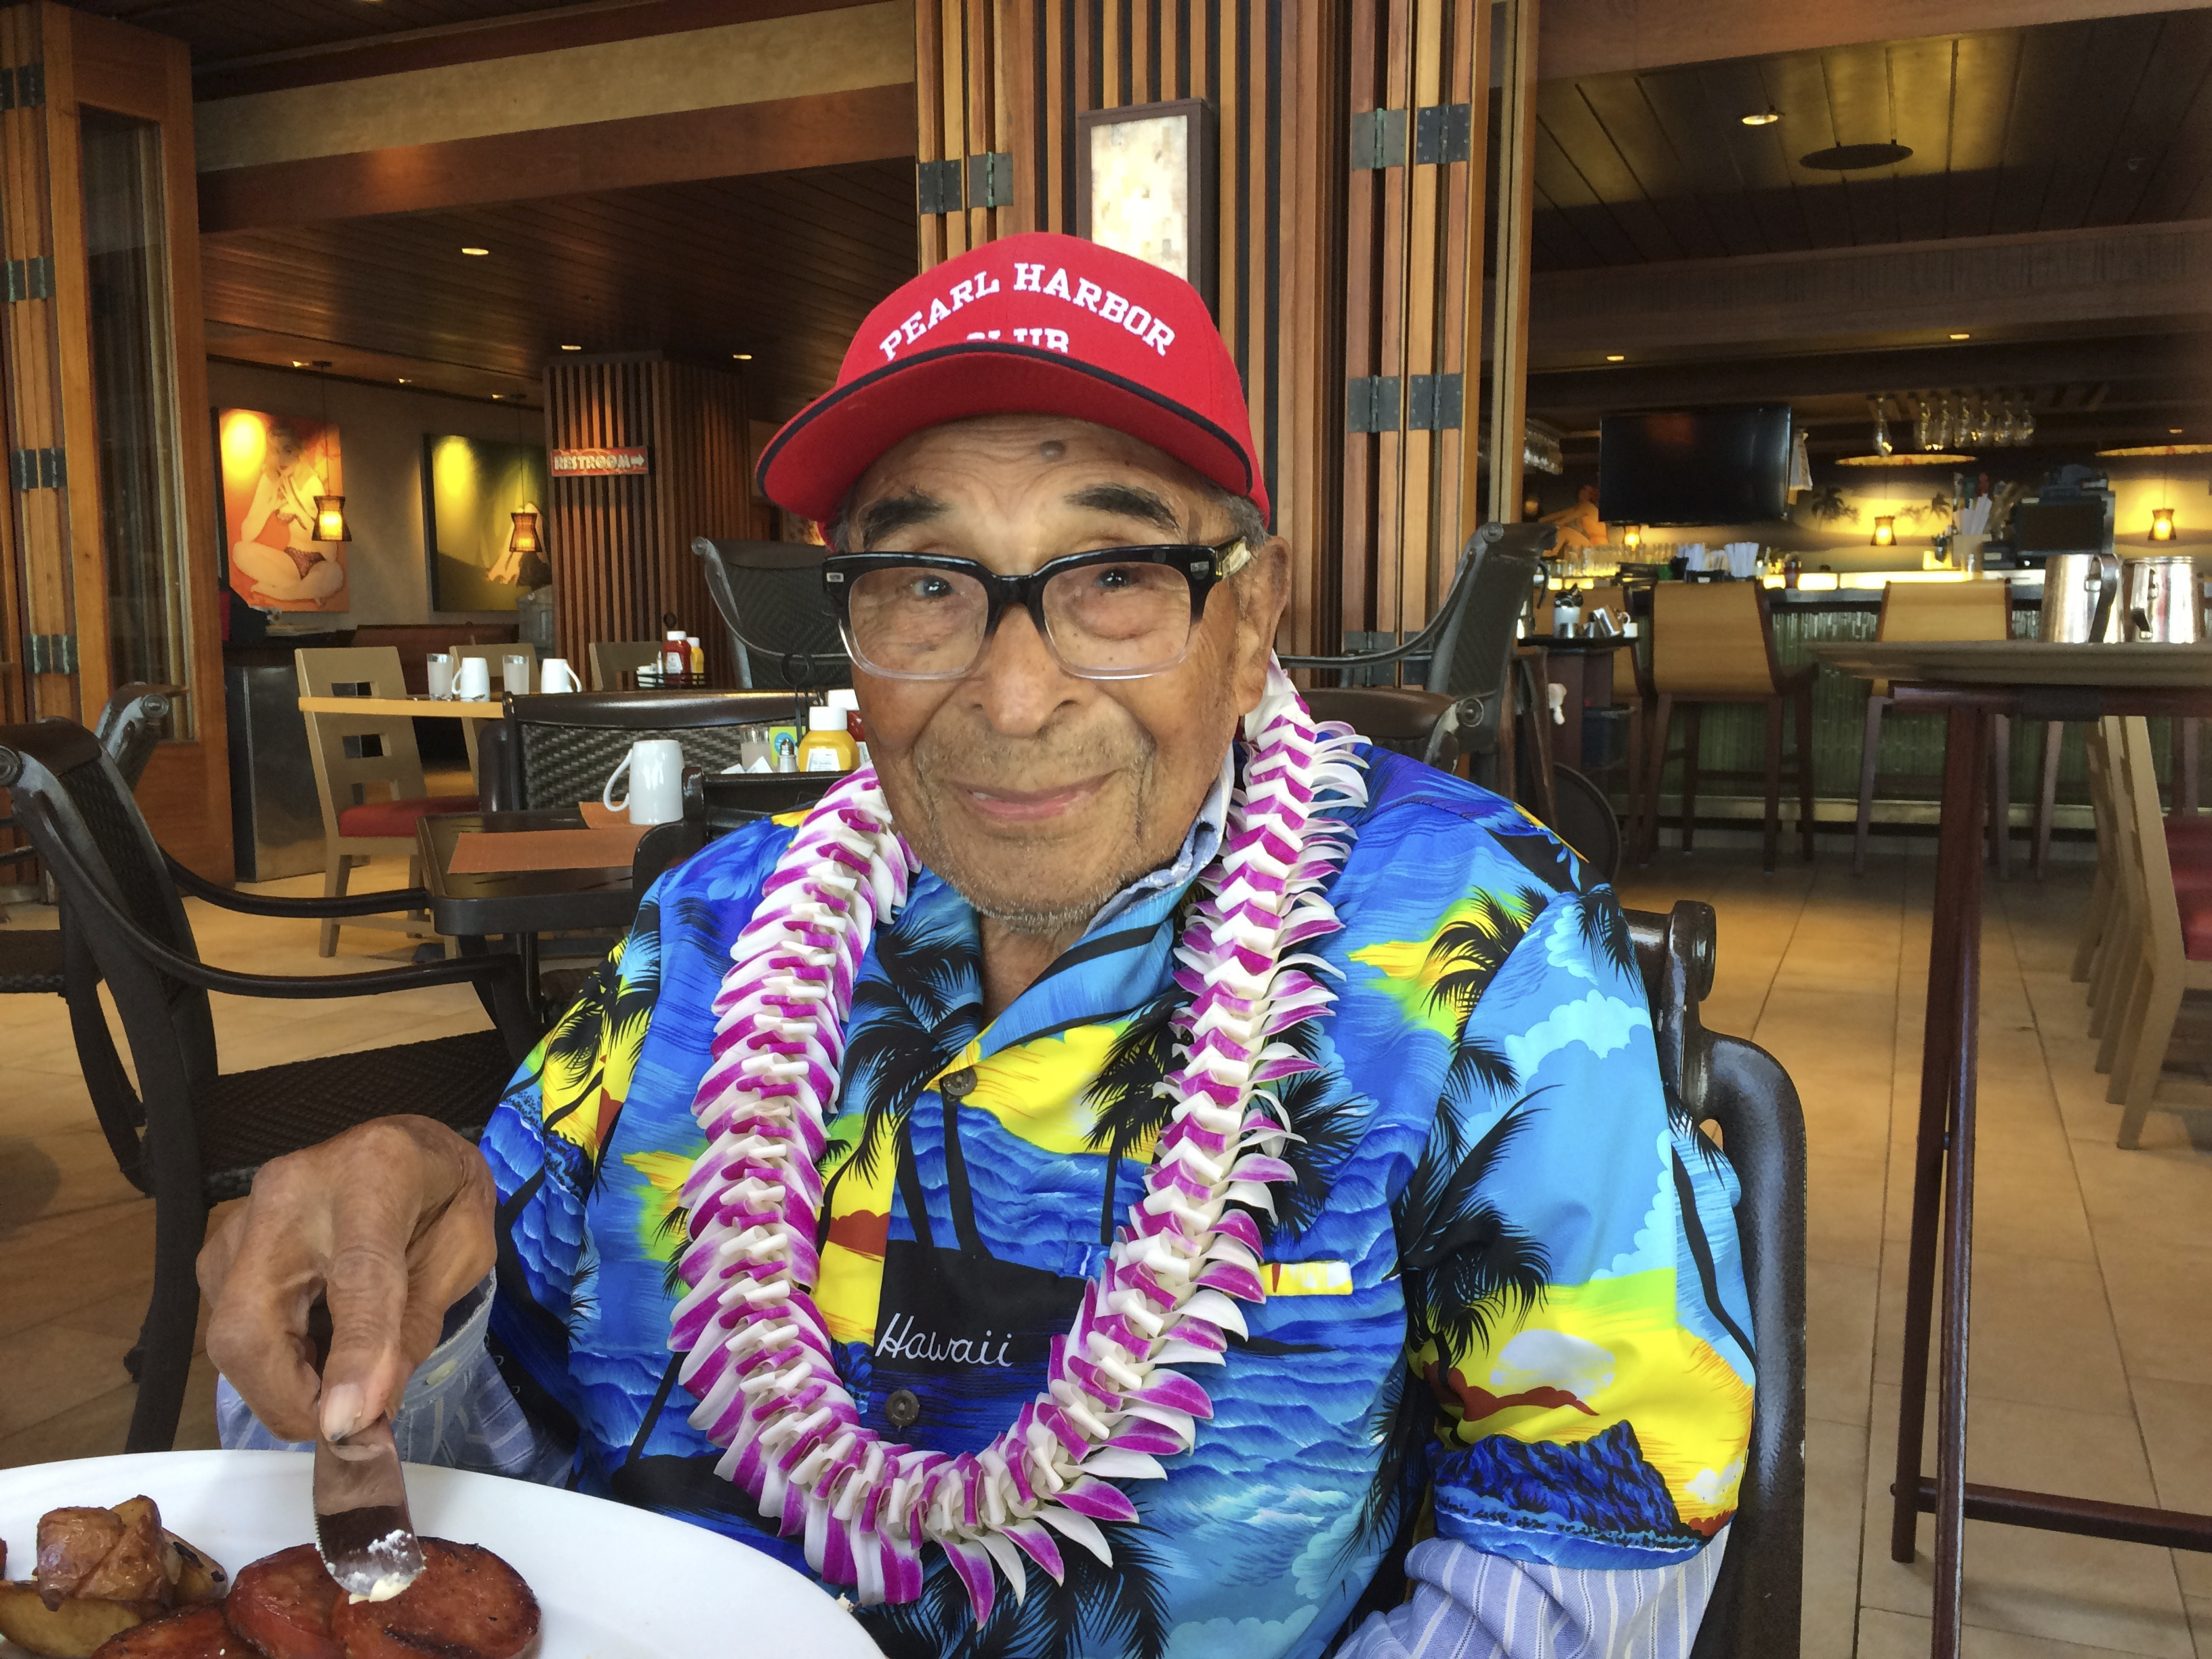 Ray Chavez, a Pearl Harbor survivor from Poway, Calif., pauses while eating breakfast in Honolulu on Dec. 5, 2016. (AP Photo/Audrey McAvoy)